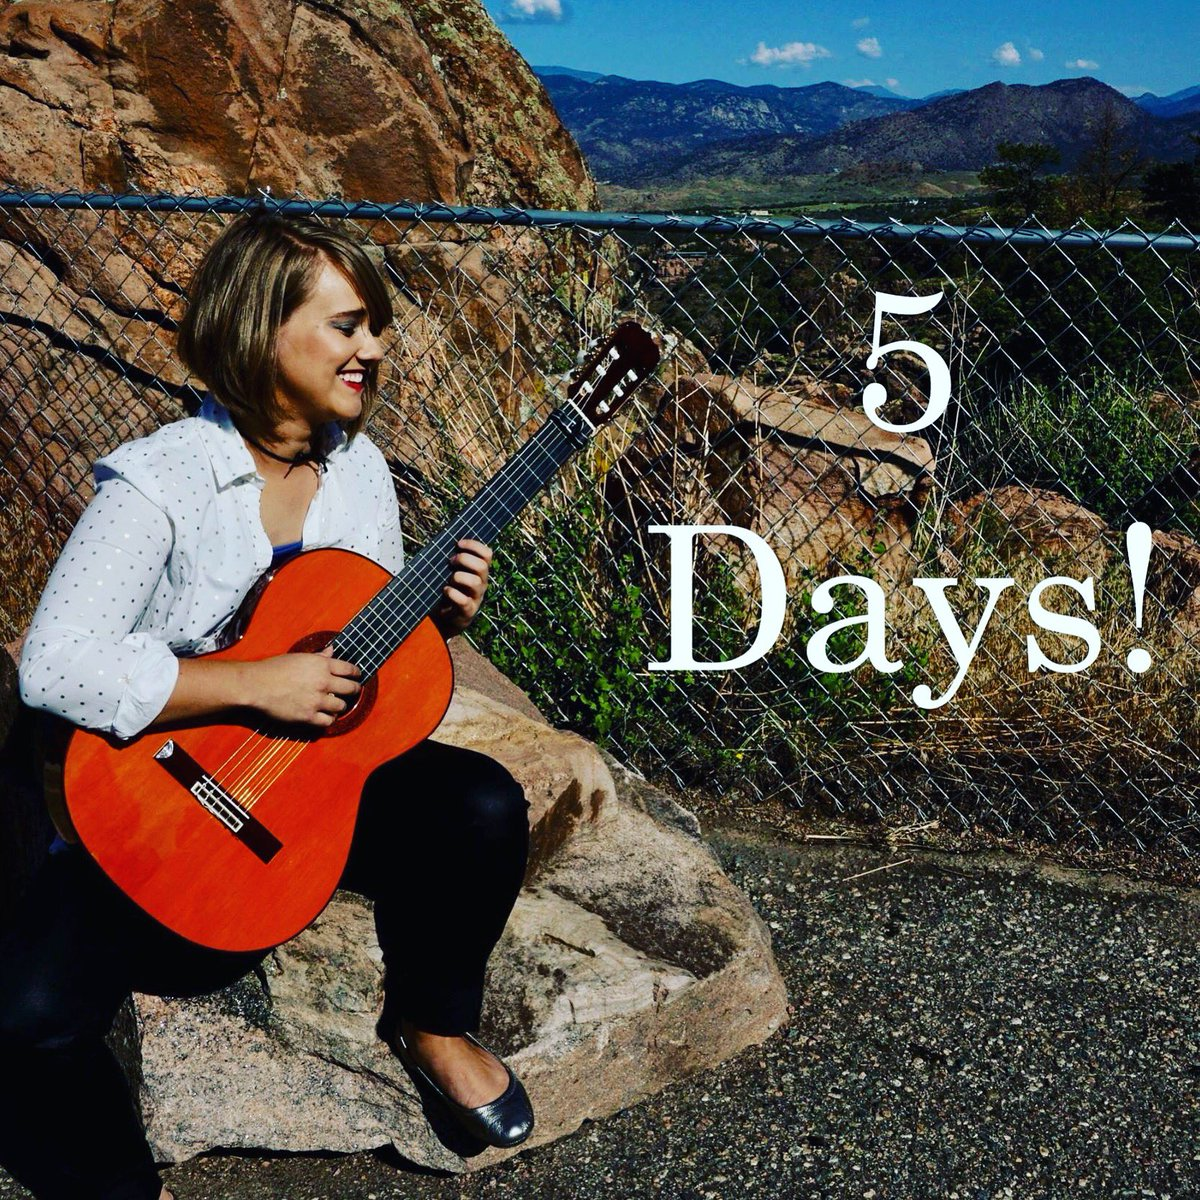 Cheesin&#39; cause we have 5 DAYS till the big release! #TheGiftOfHope #Promo #ClassicalGuitar #ReadySetGo<br>http://pic.twitter.com/q4Sir0olYo